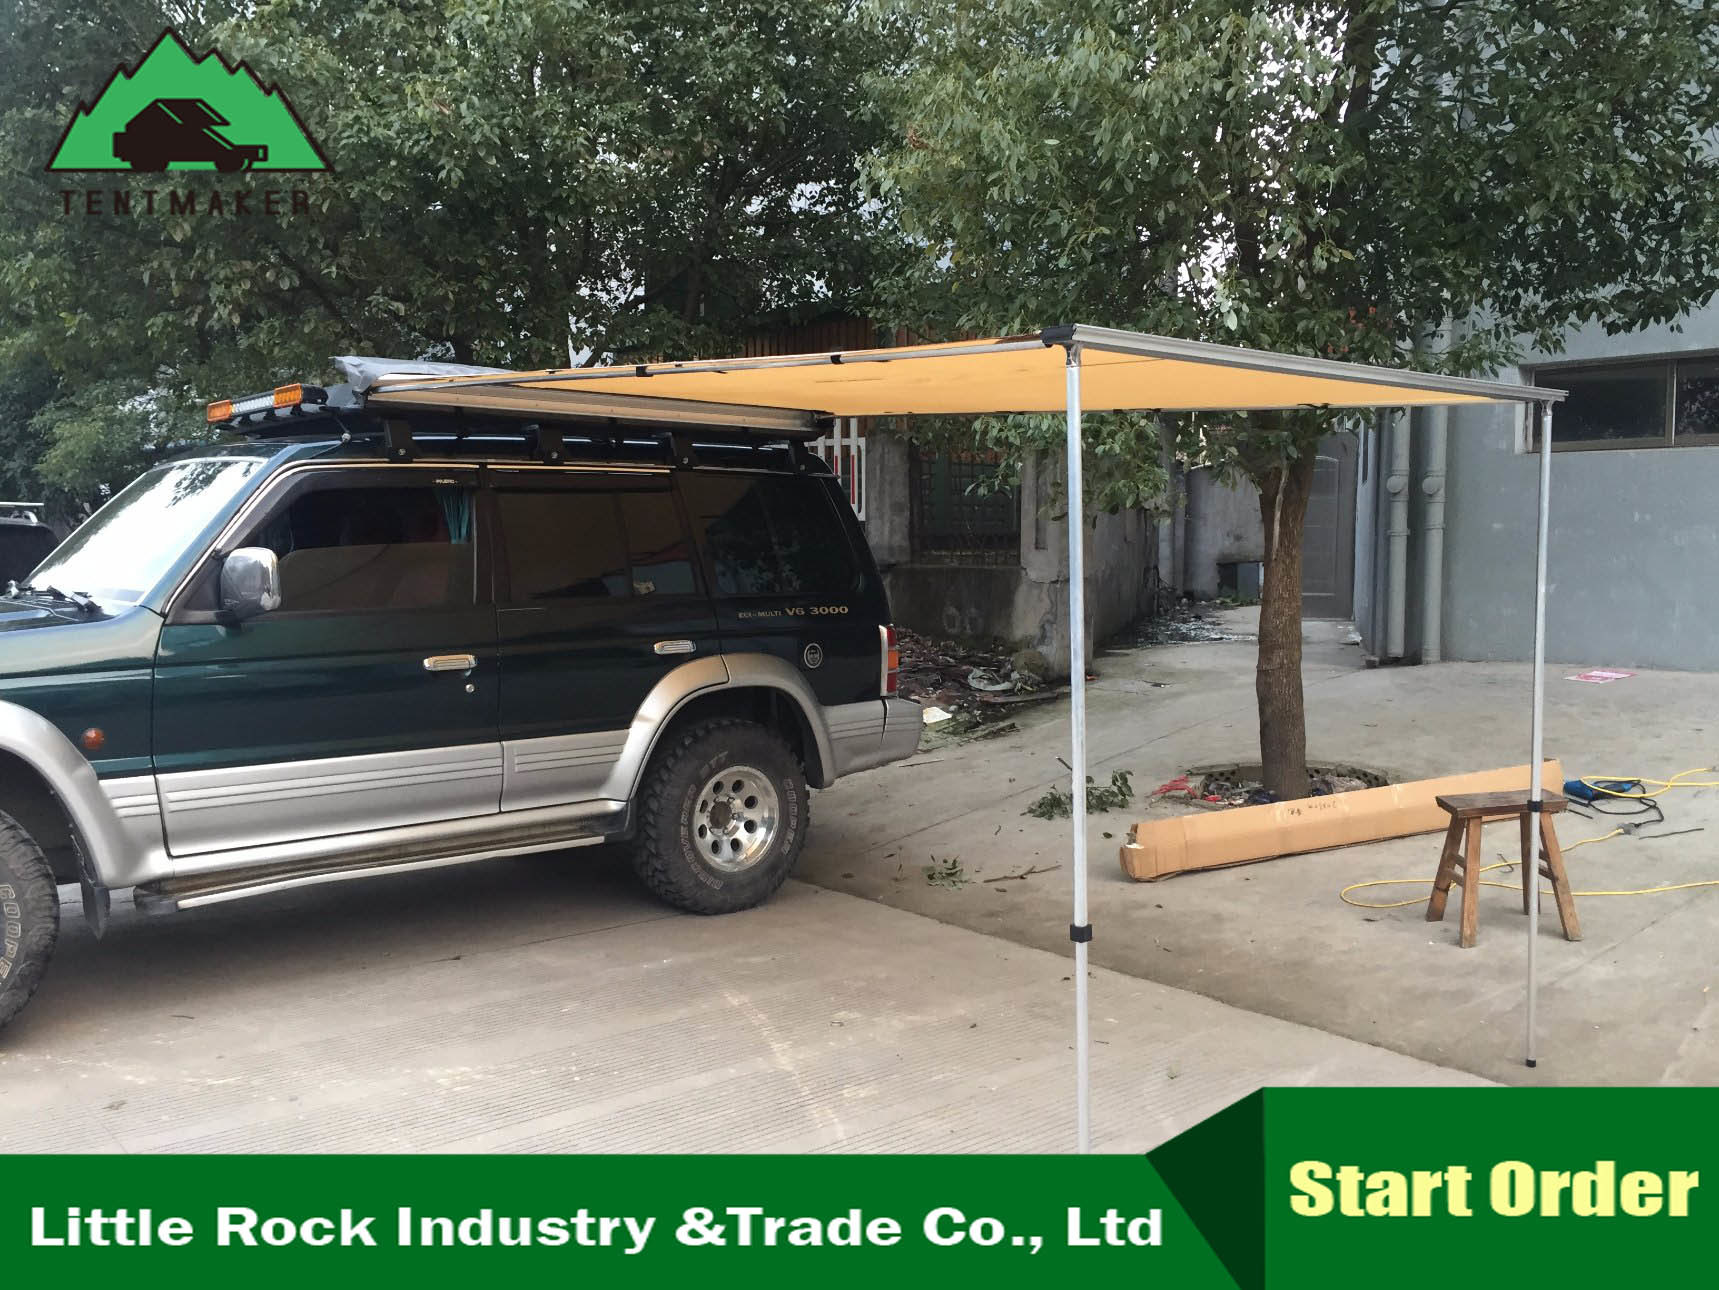 China Car Side Awning 4WD Caravan Side Awning - China Ripstop Awning Car Awning & [Hot Item] Car Side Awning 4WD Caravan Side Awning